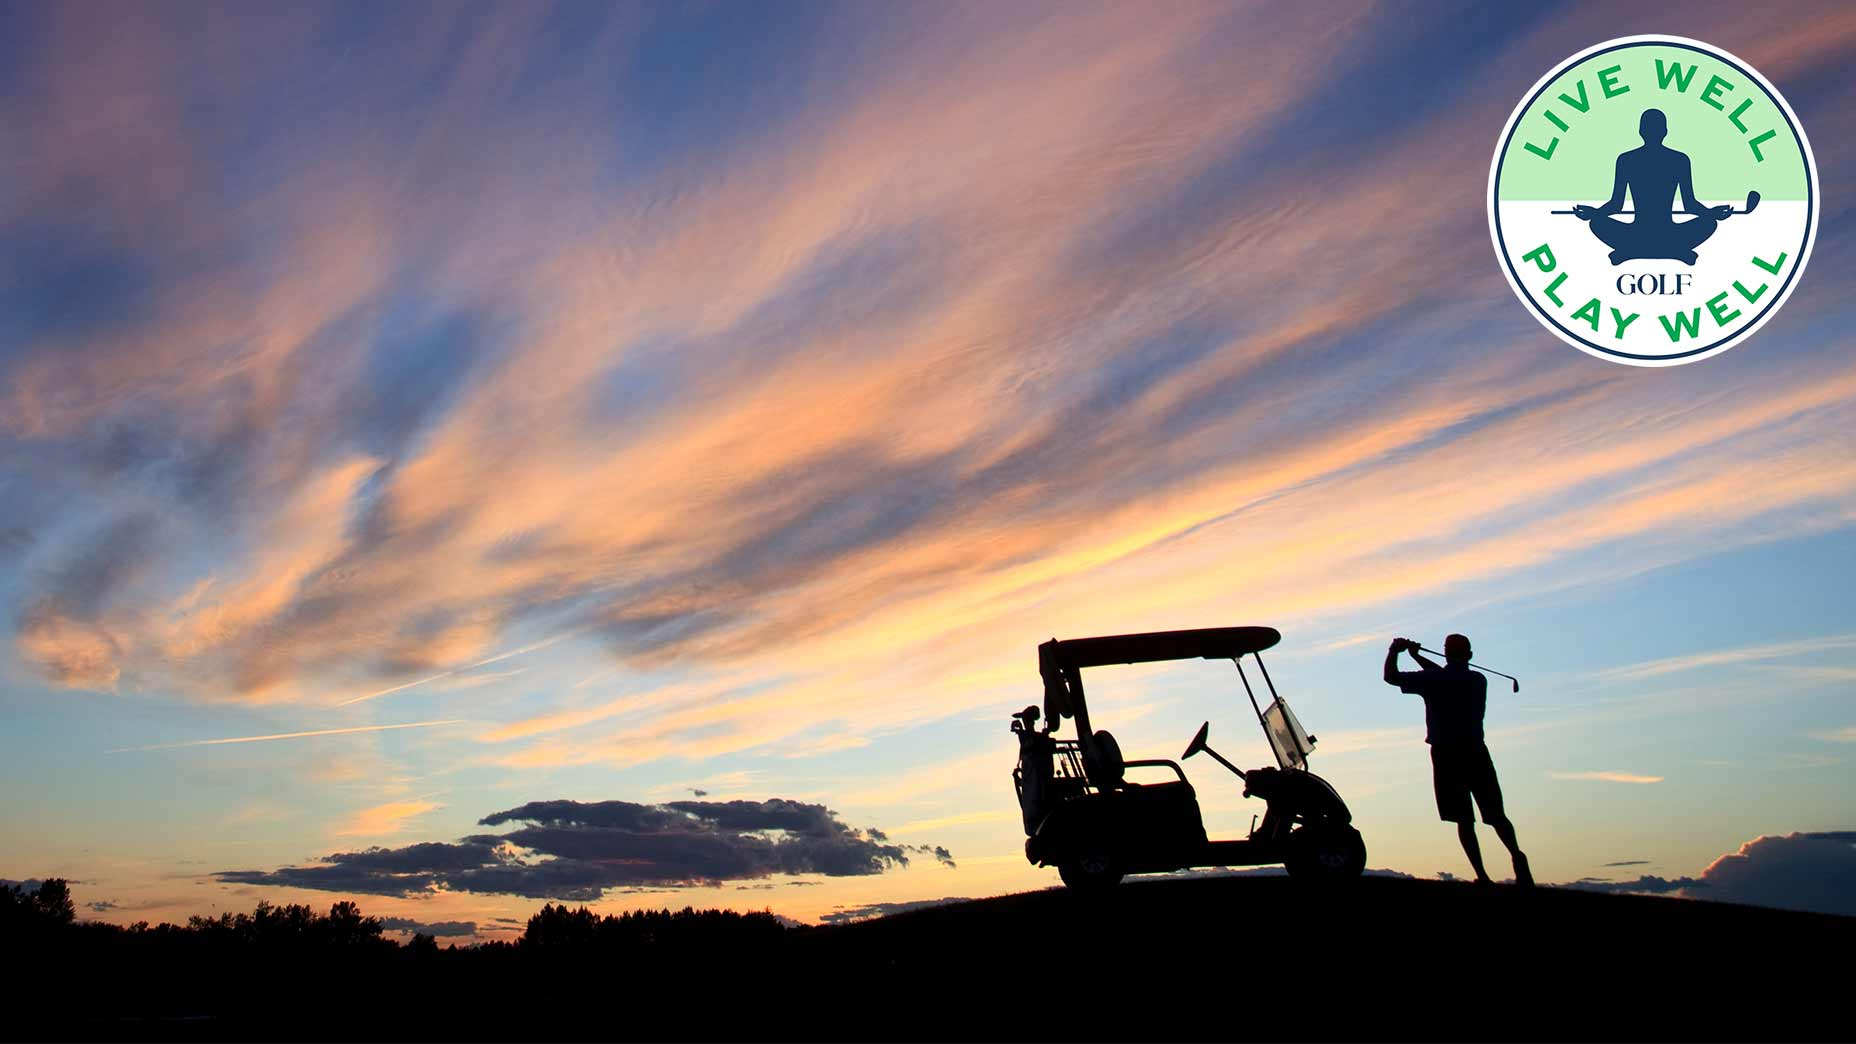 A good night's sleep can help you feel better and play better on the course.